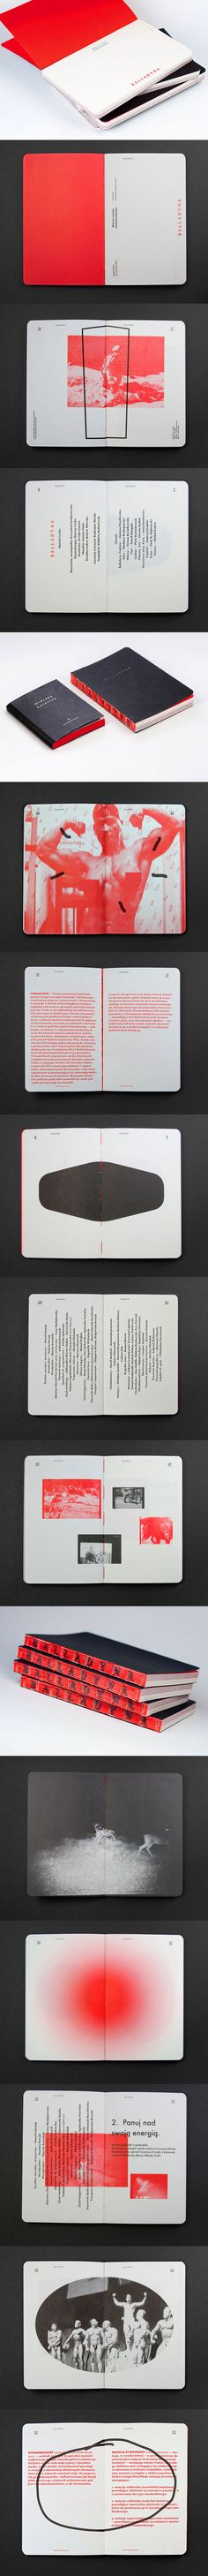 Balladyna Magazine – PPT layout ideas – Design is art Editorial Design Layouts, Layout Design, Page Design, Print Design, Poster Layout, Print Layout, Book Layout, Branding, To Do App